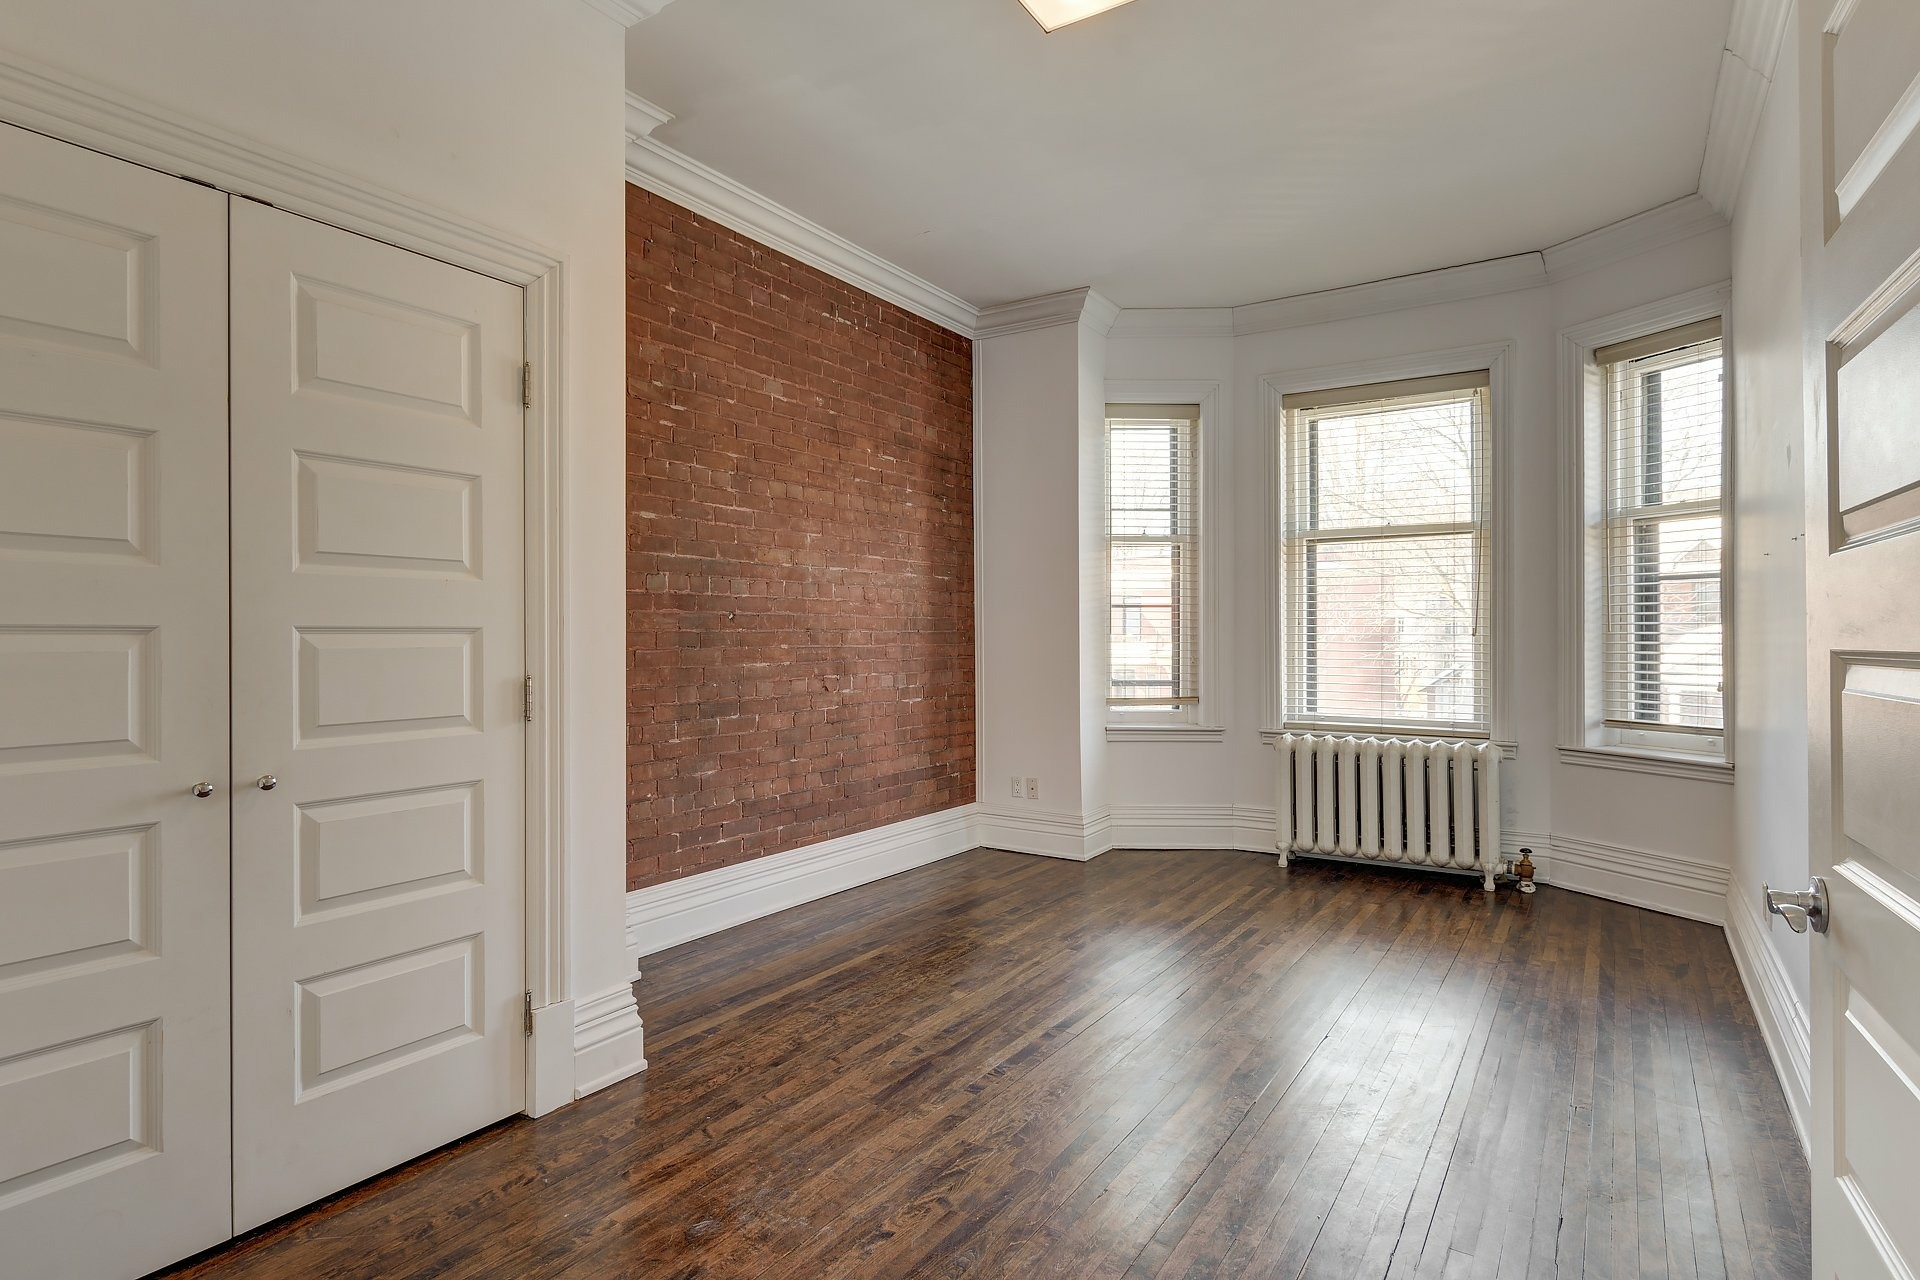 image 10 - House For rent Westmount - 9 rooms